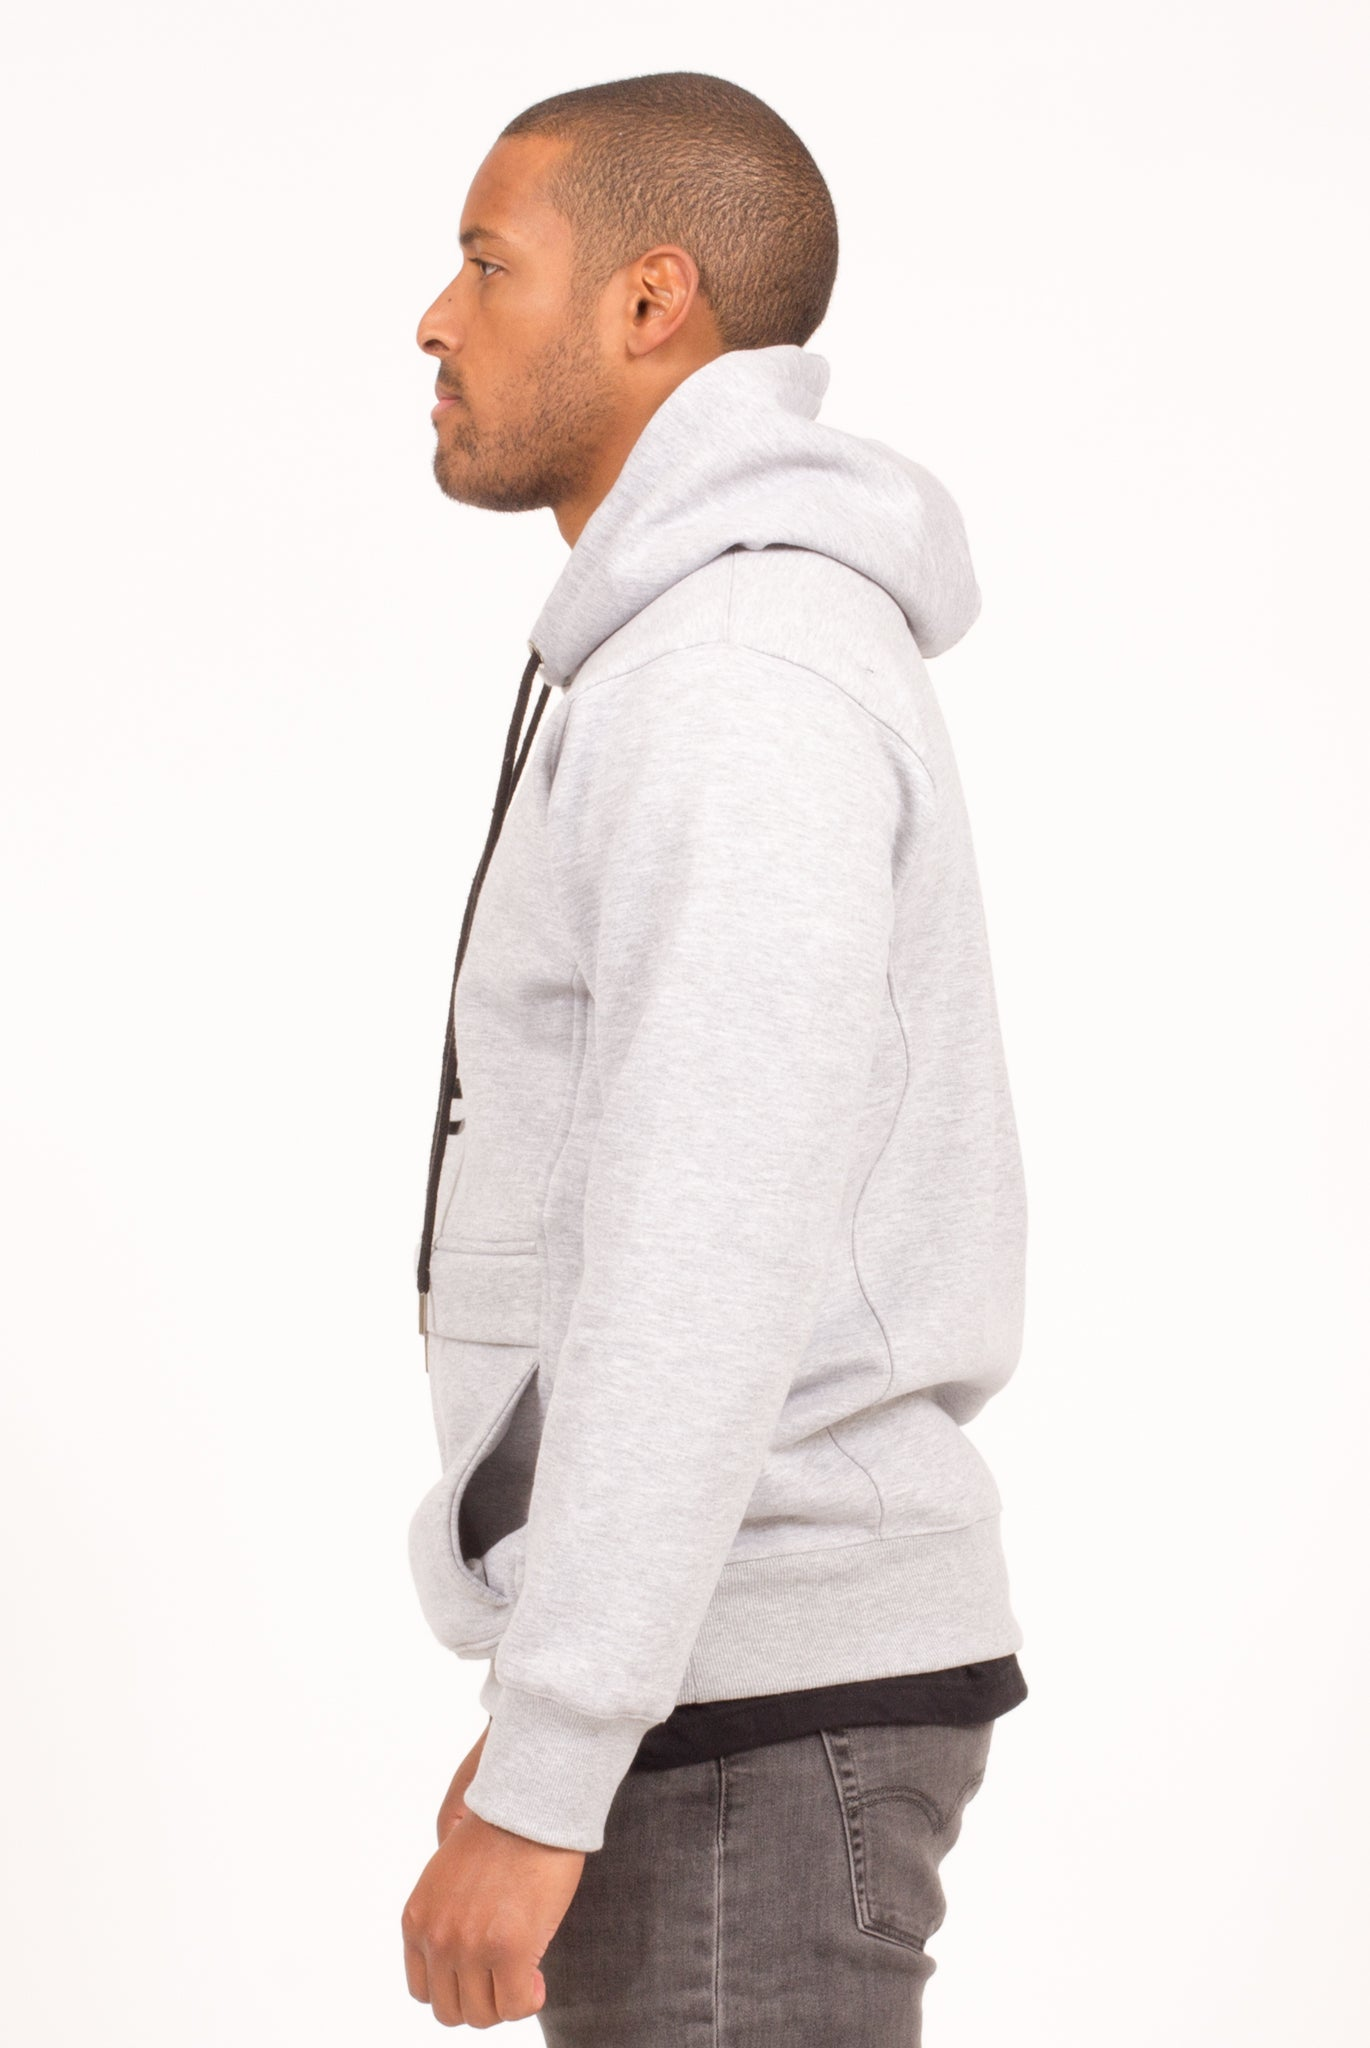 STORM FLAP HOODIE IN HEATHER GREY